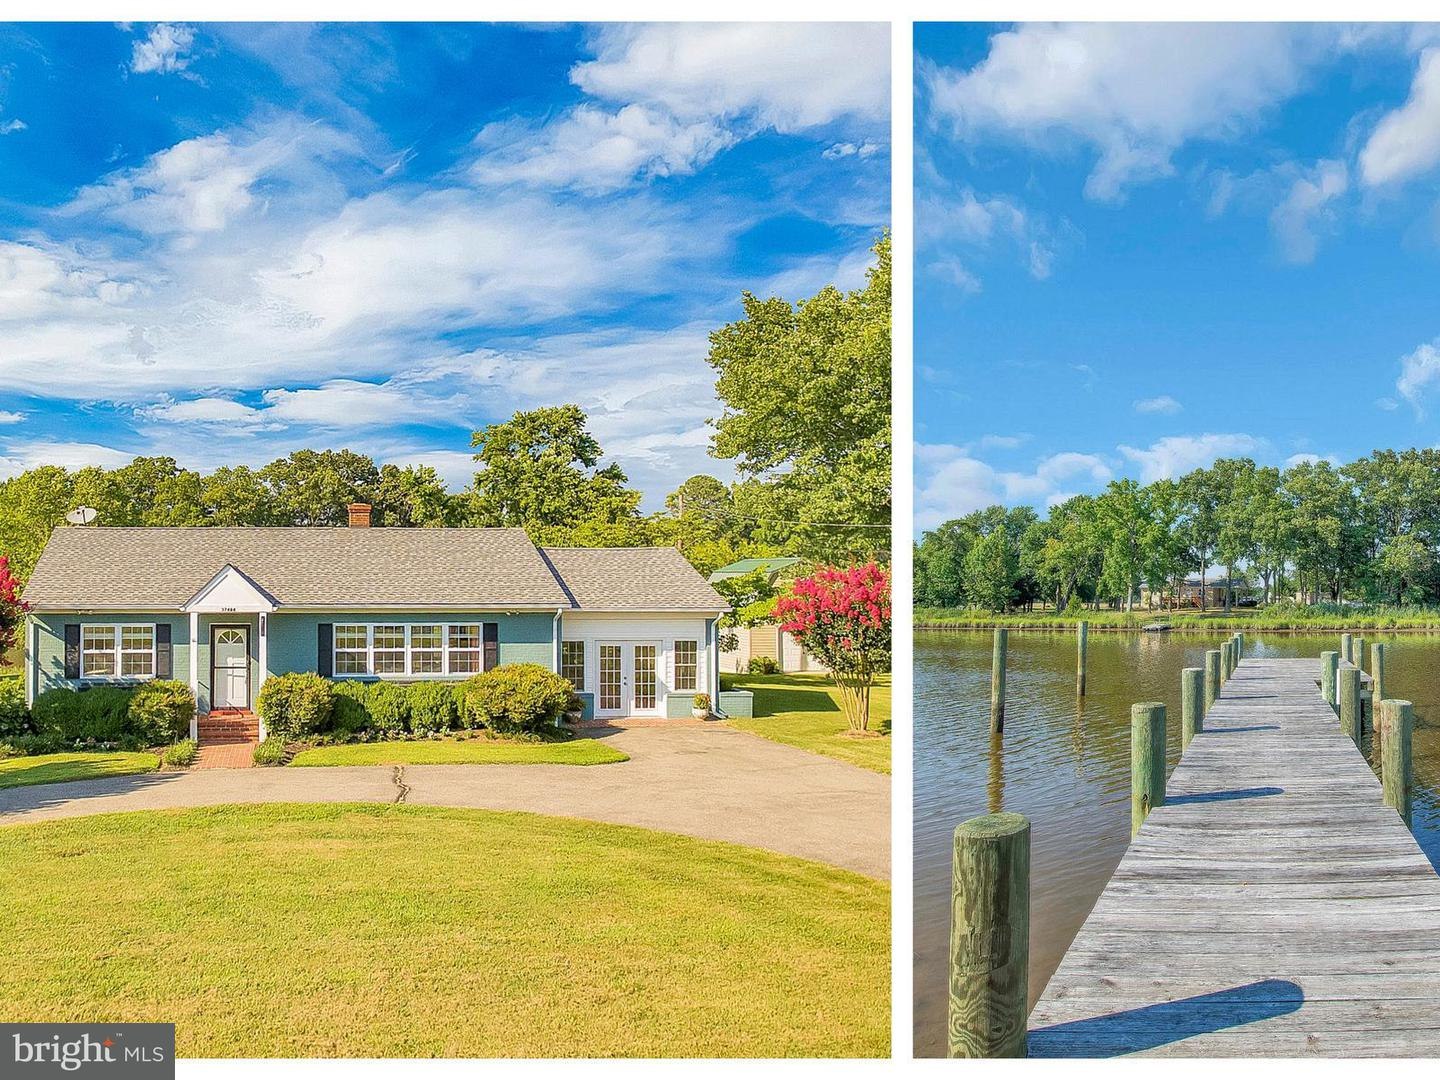 Single Family for Sale at 37484 River Springs Rd Avenue, Maryland 20609 United States